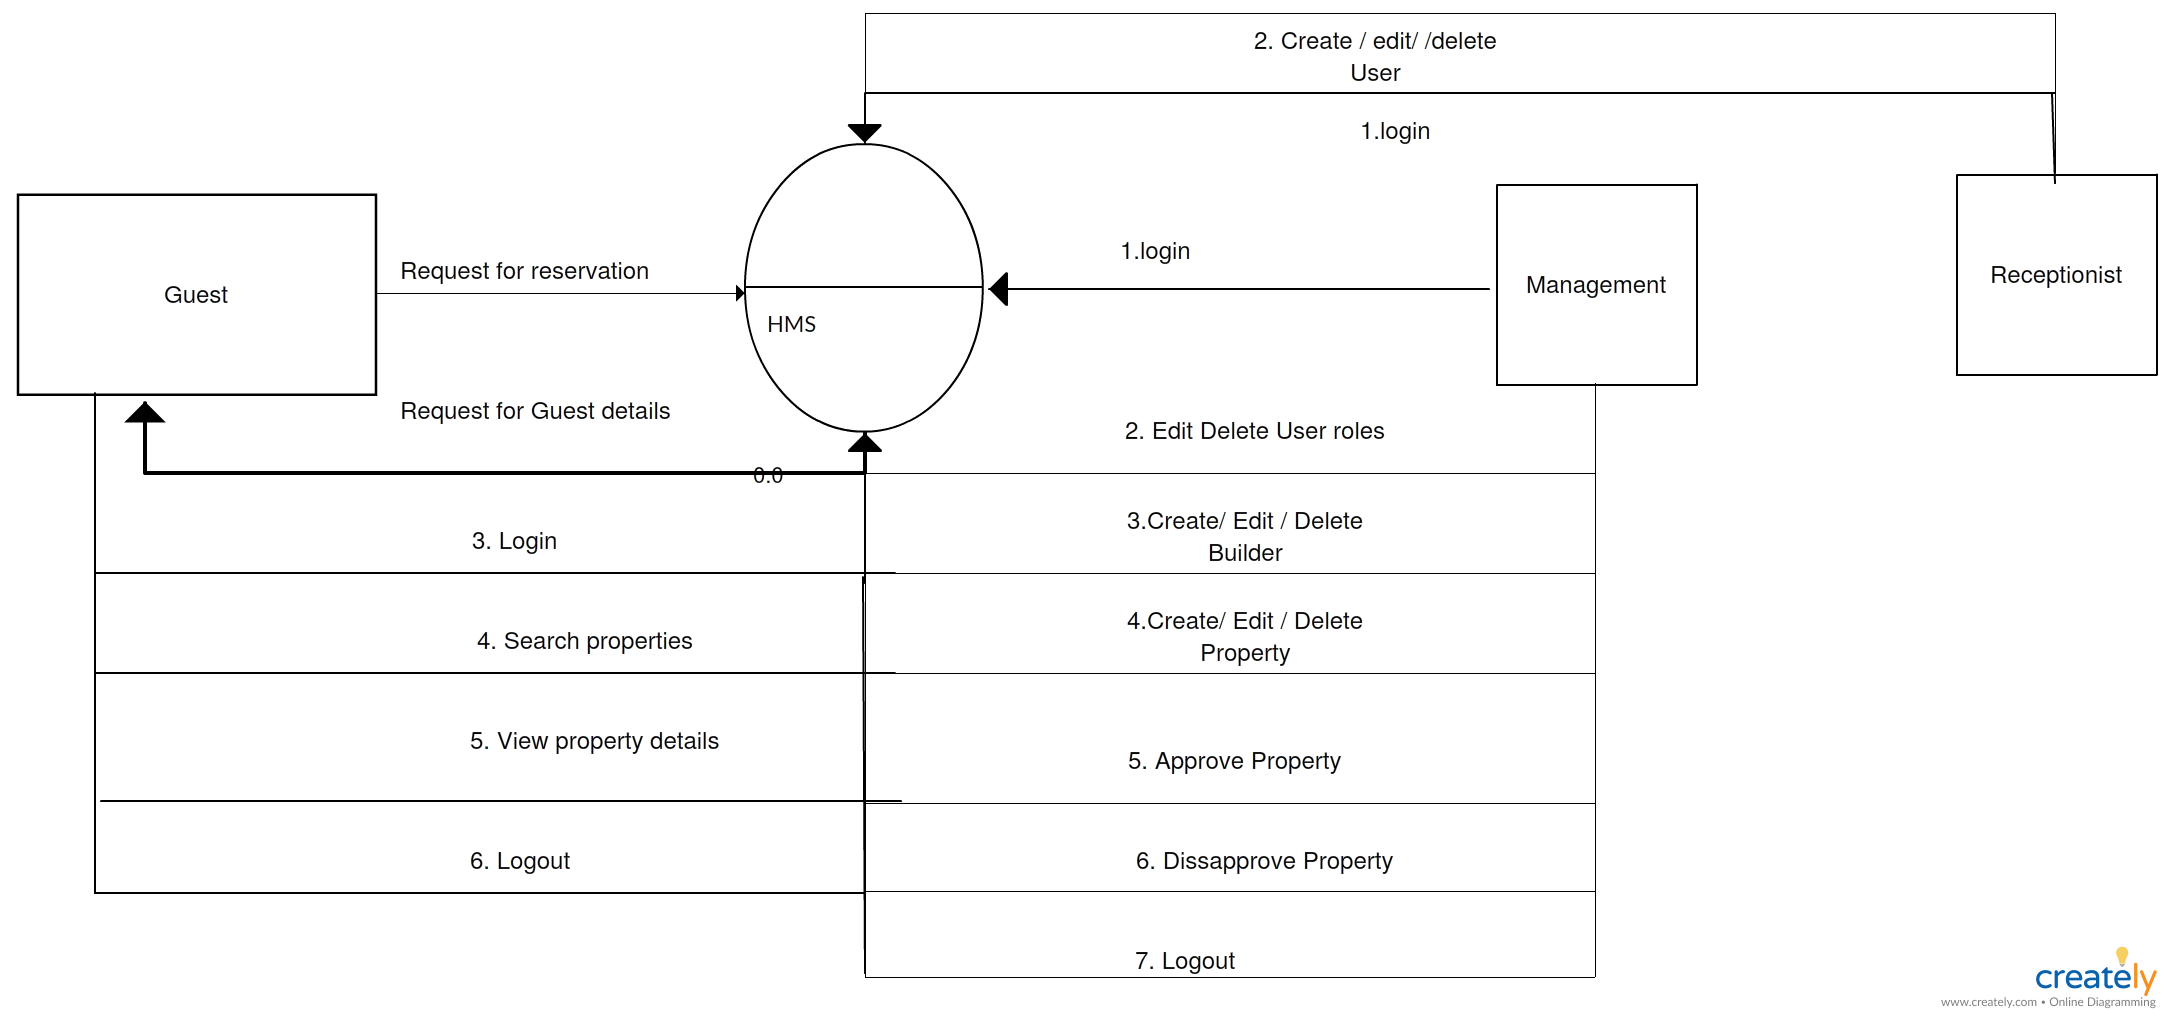 data flow diagram dfd gs of hotel management system click on the image to use this as a template and modify the flow as per your requirement  [ 2170 x 1018 Pixel ]